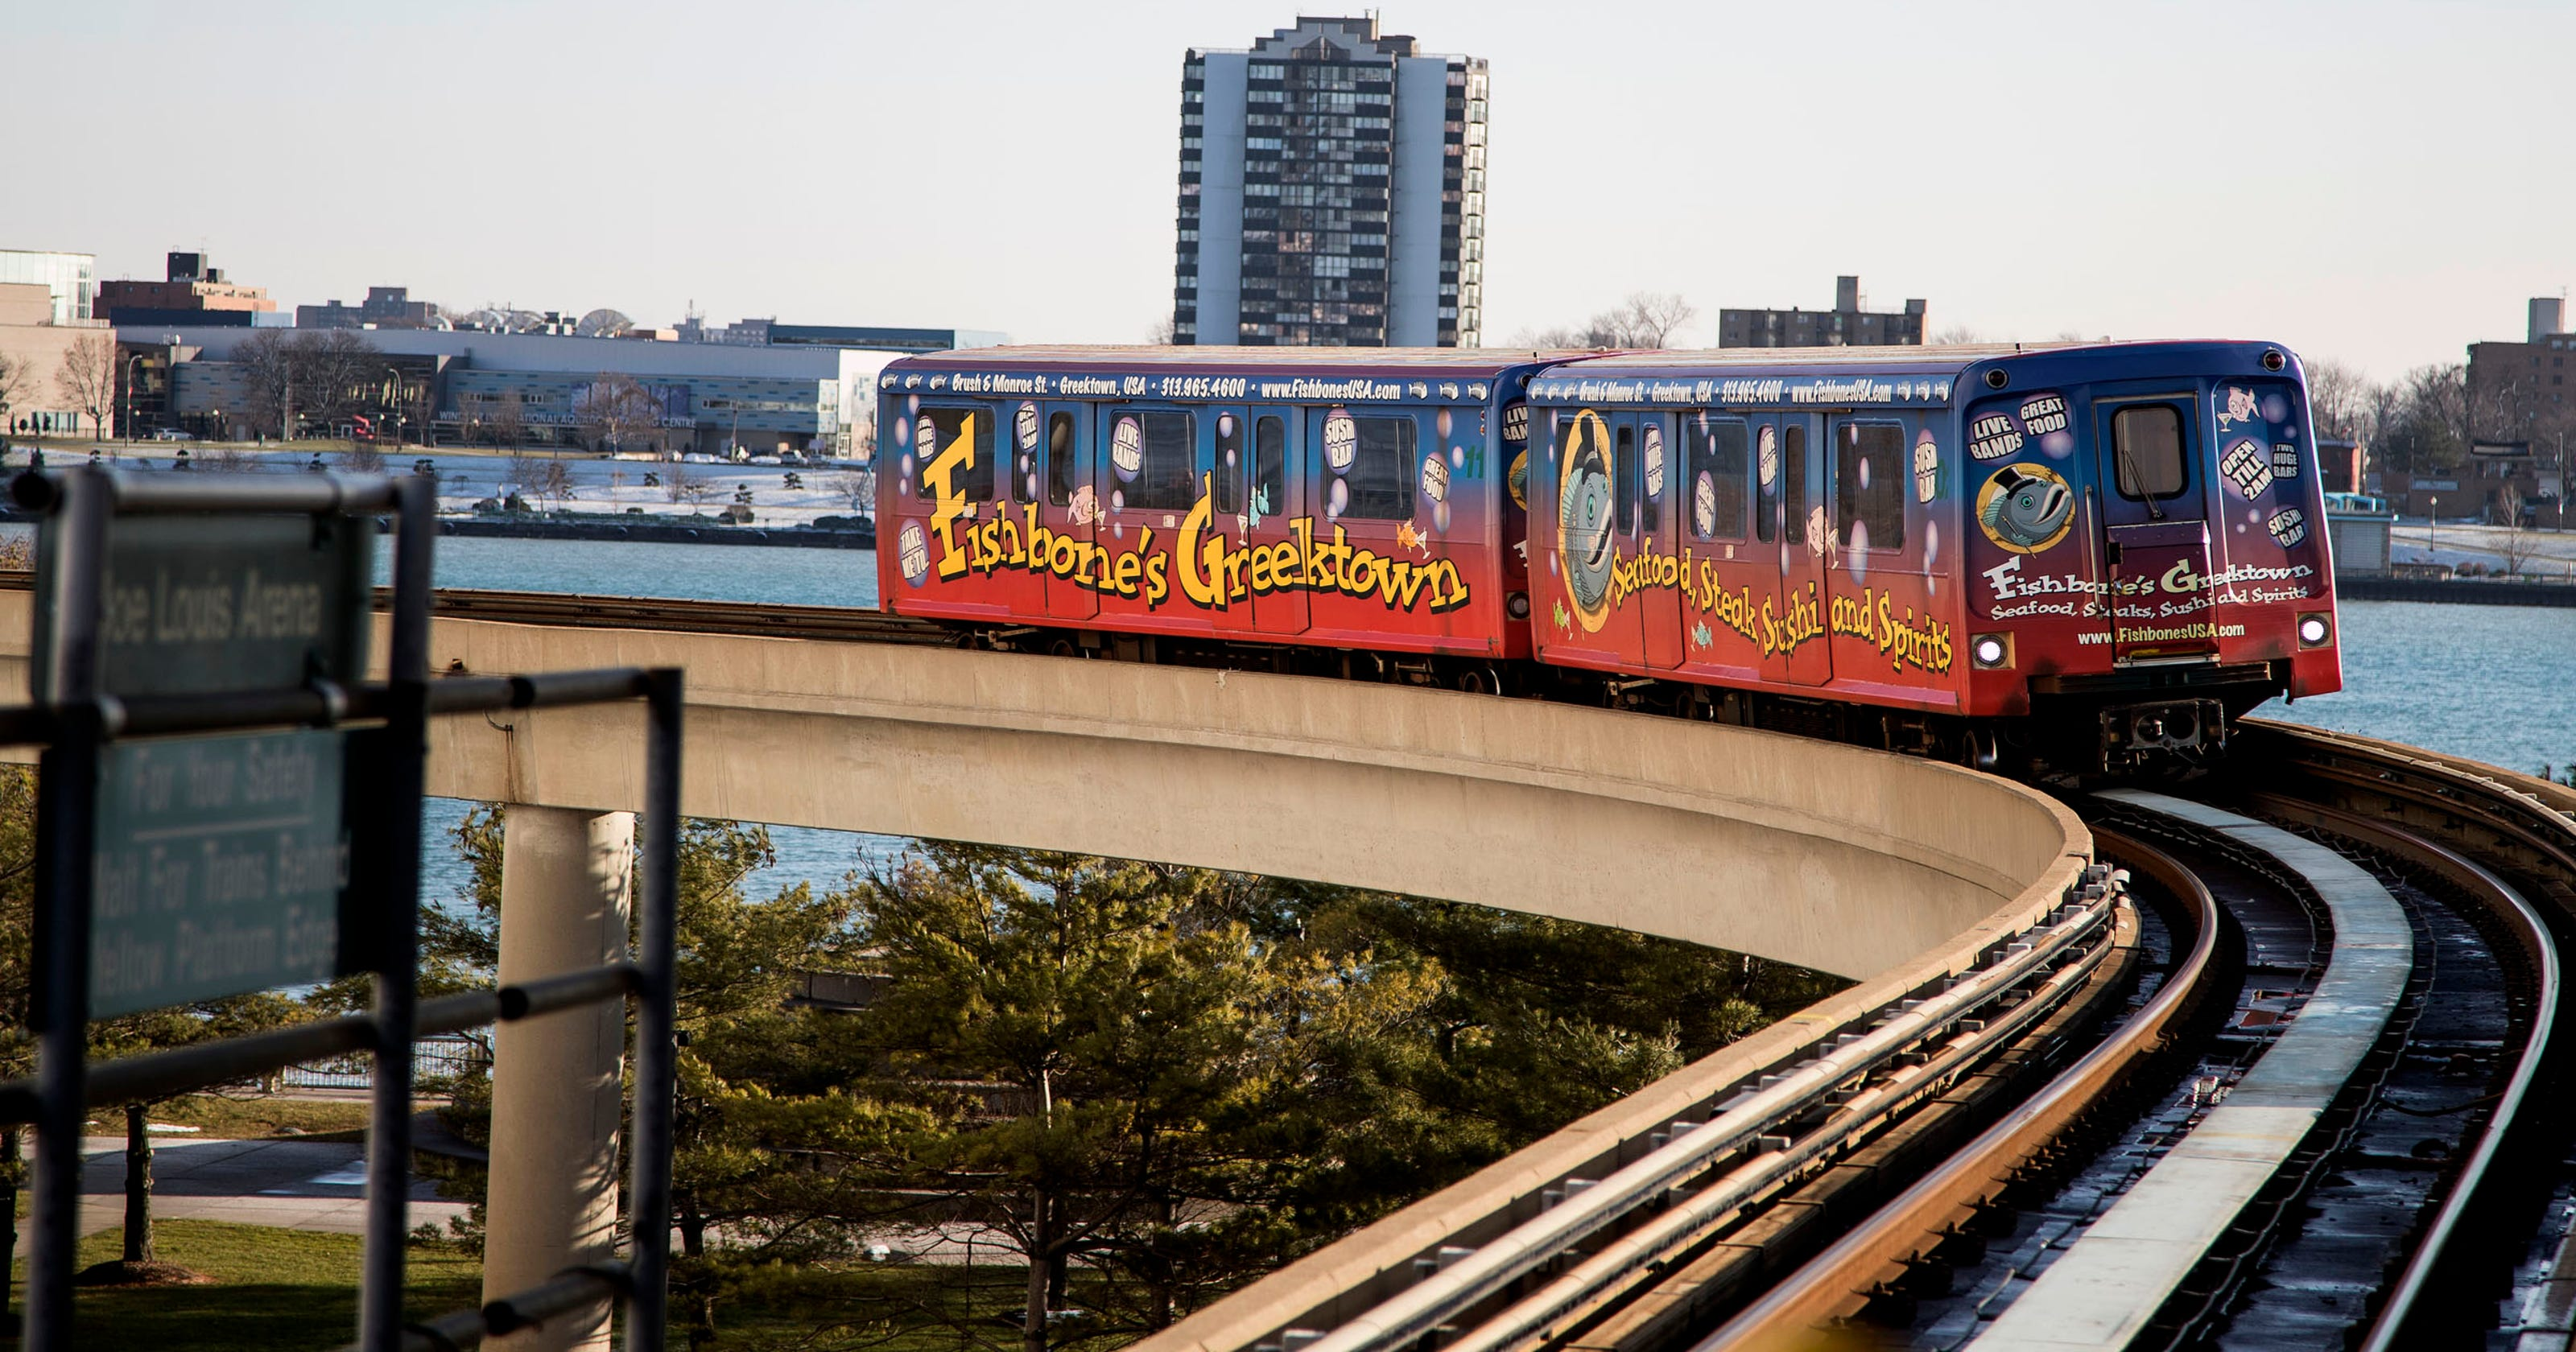 Heavy smoke prompts suspension of Detroit People Mover service